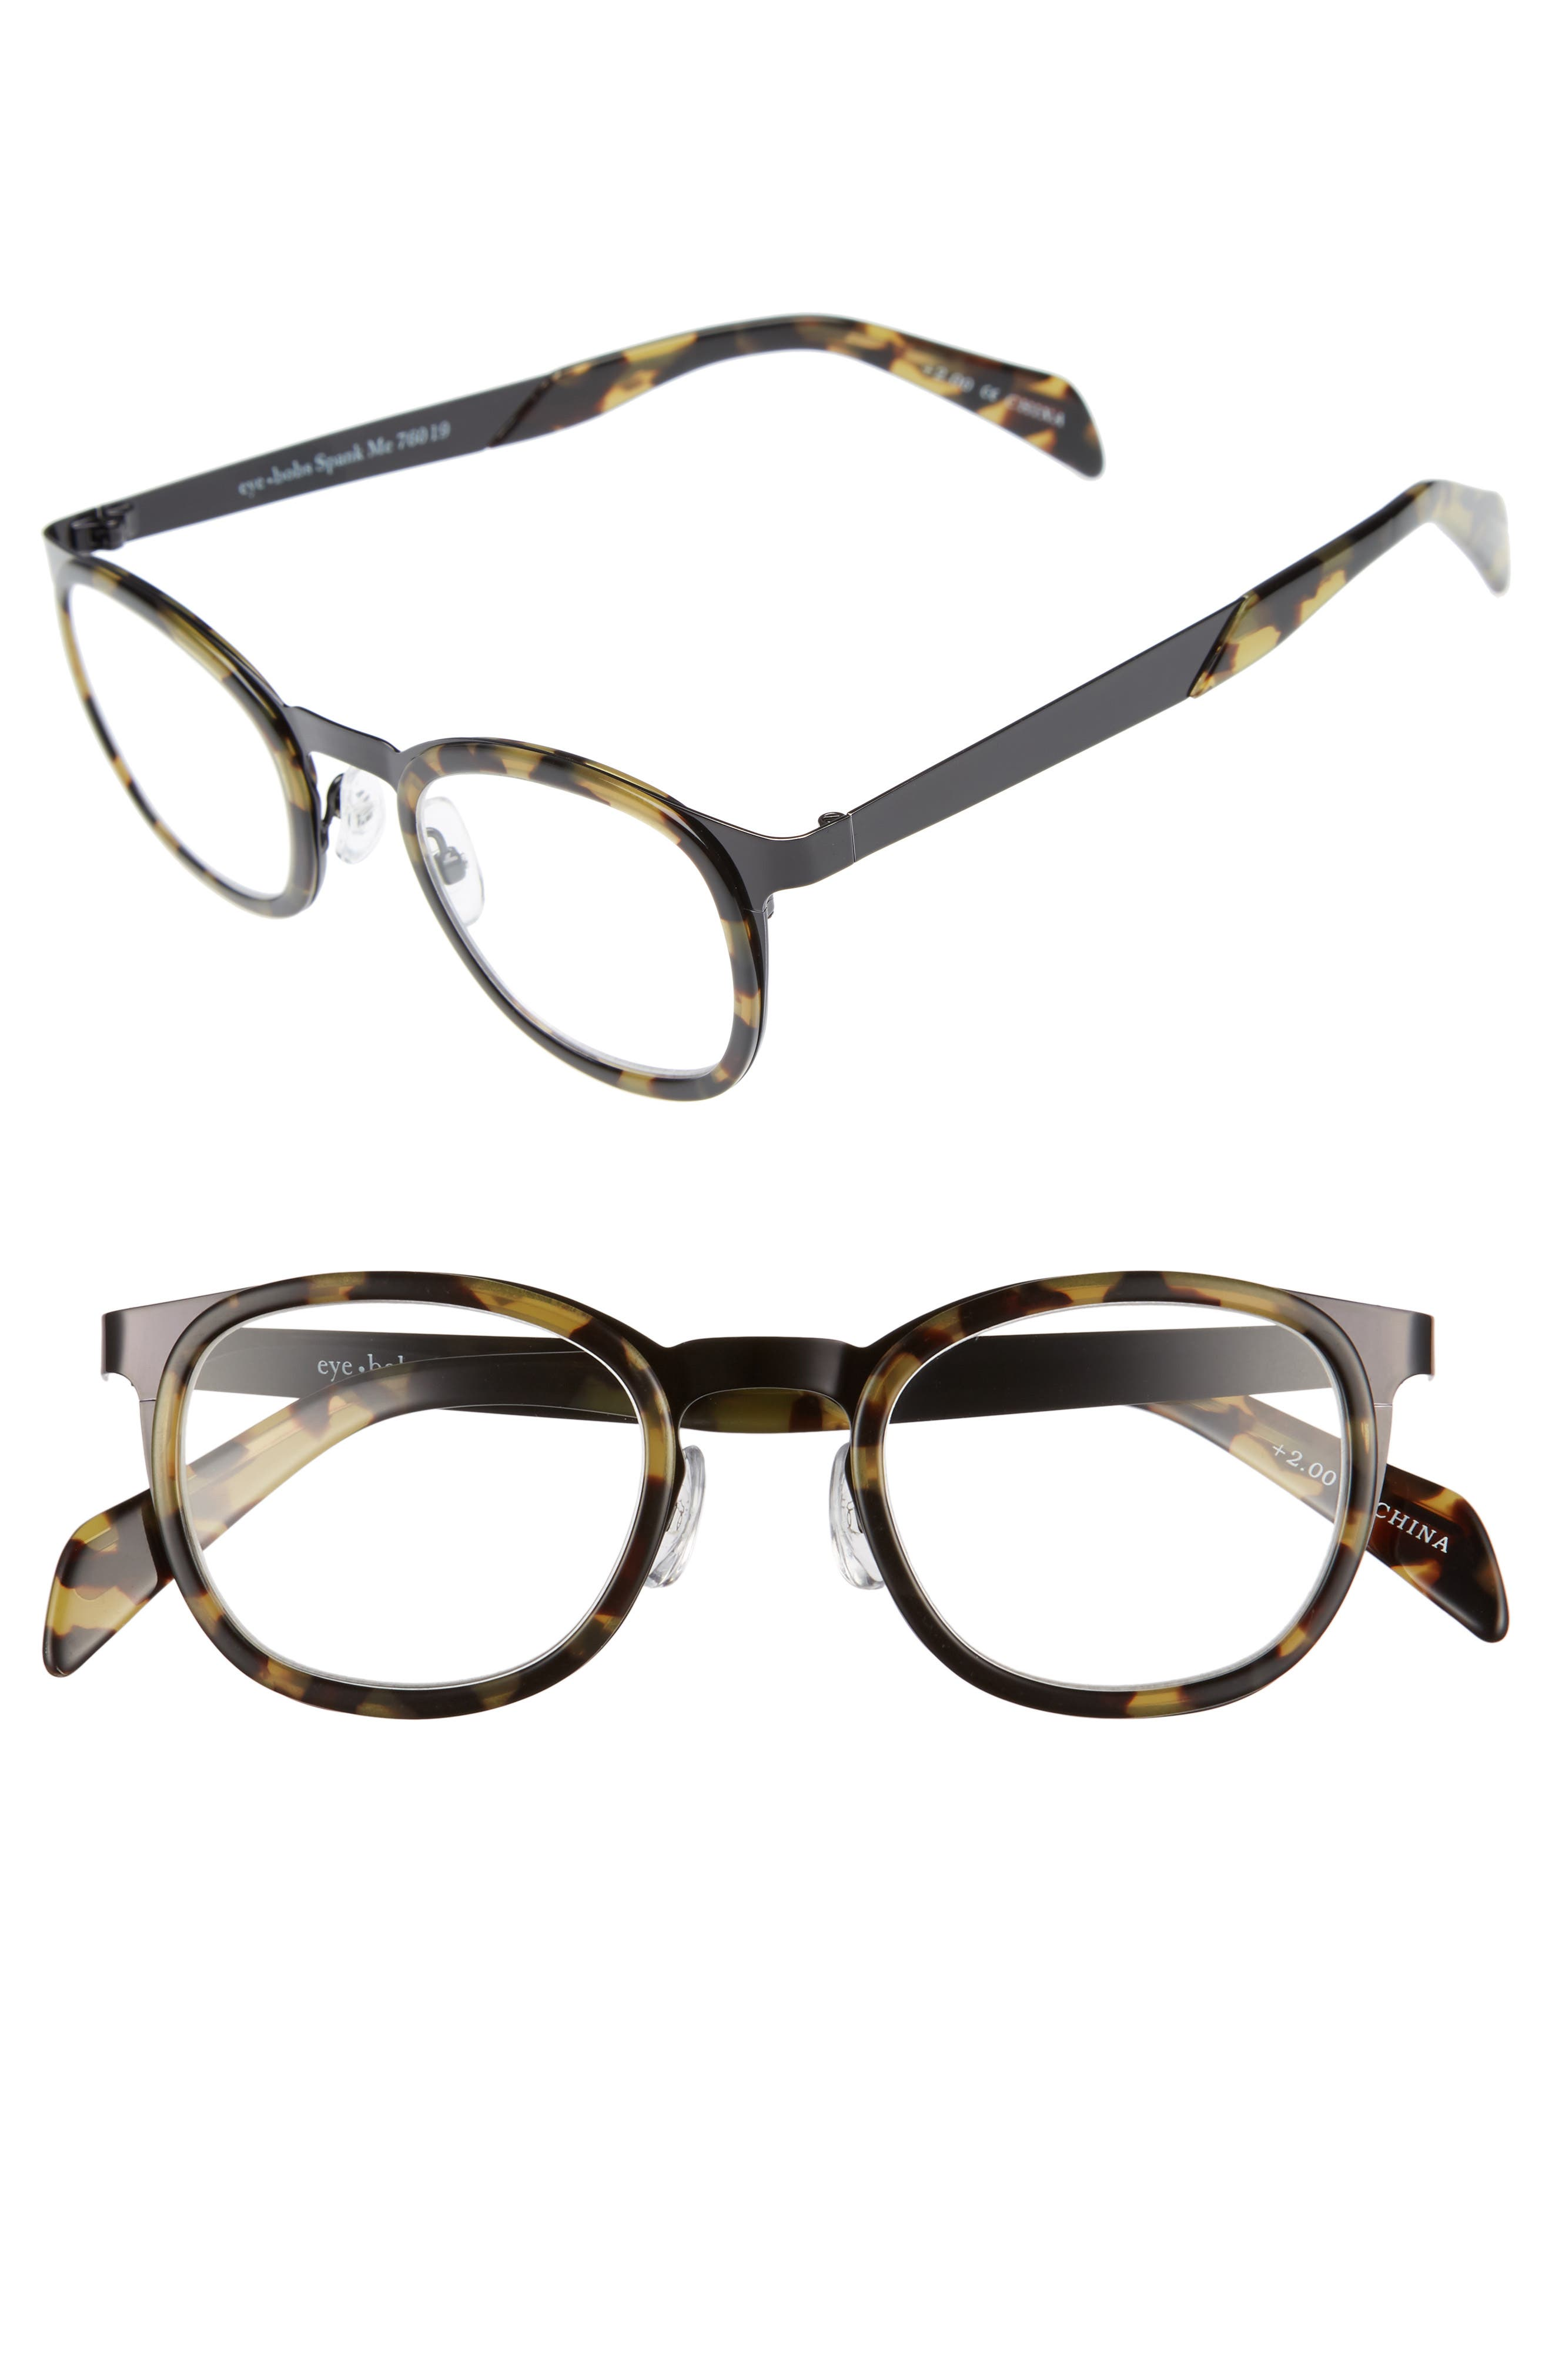 Spank Me 45mm Reading Glasses,                         Main,                         color, BLACK METAL WITH TORTOISE